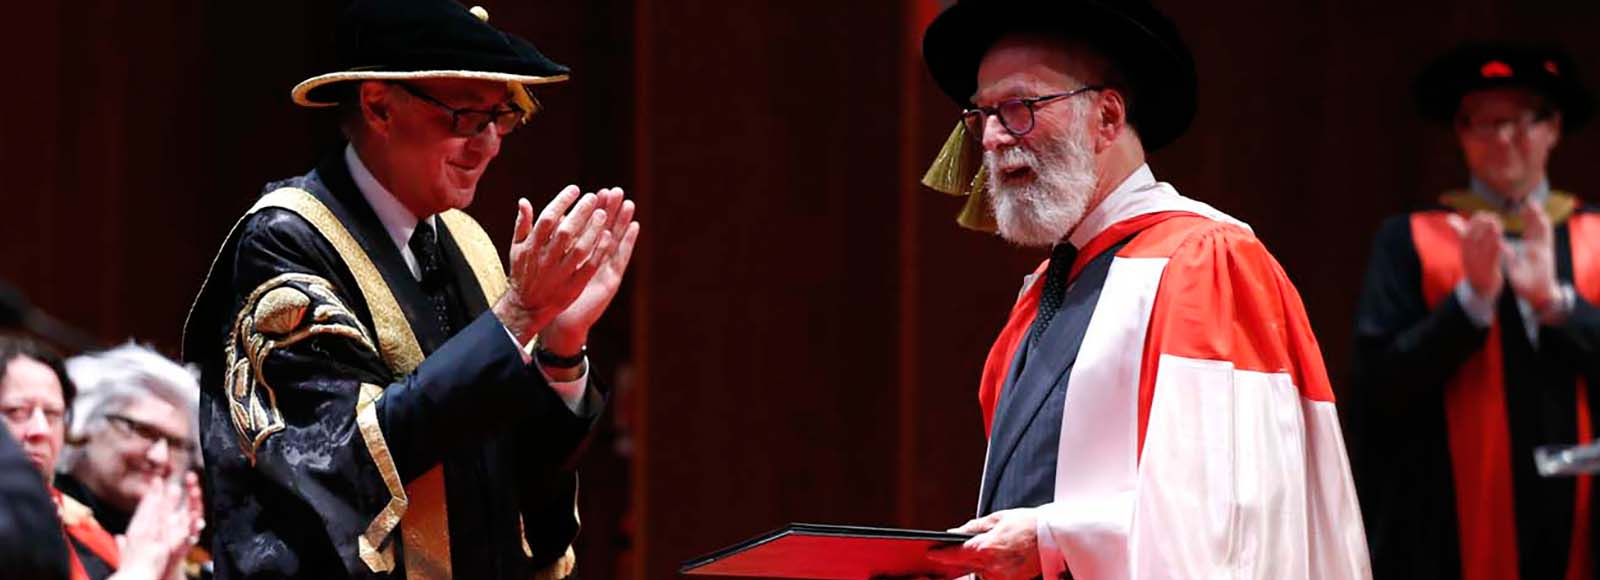 John Kaldor AO receives his honorary doctorate from UNSW Chancellor David Gonski AC.